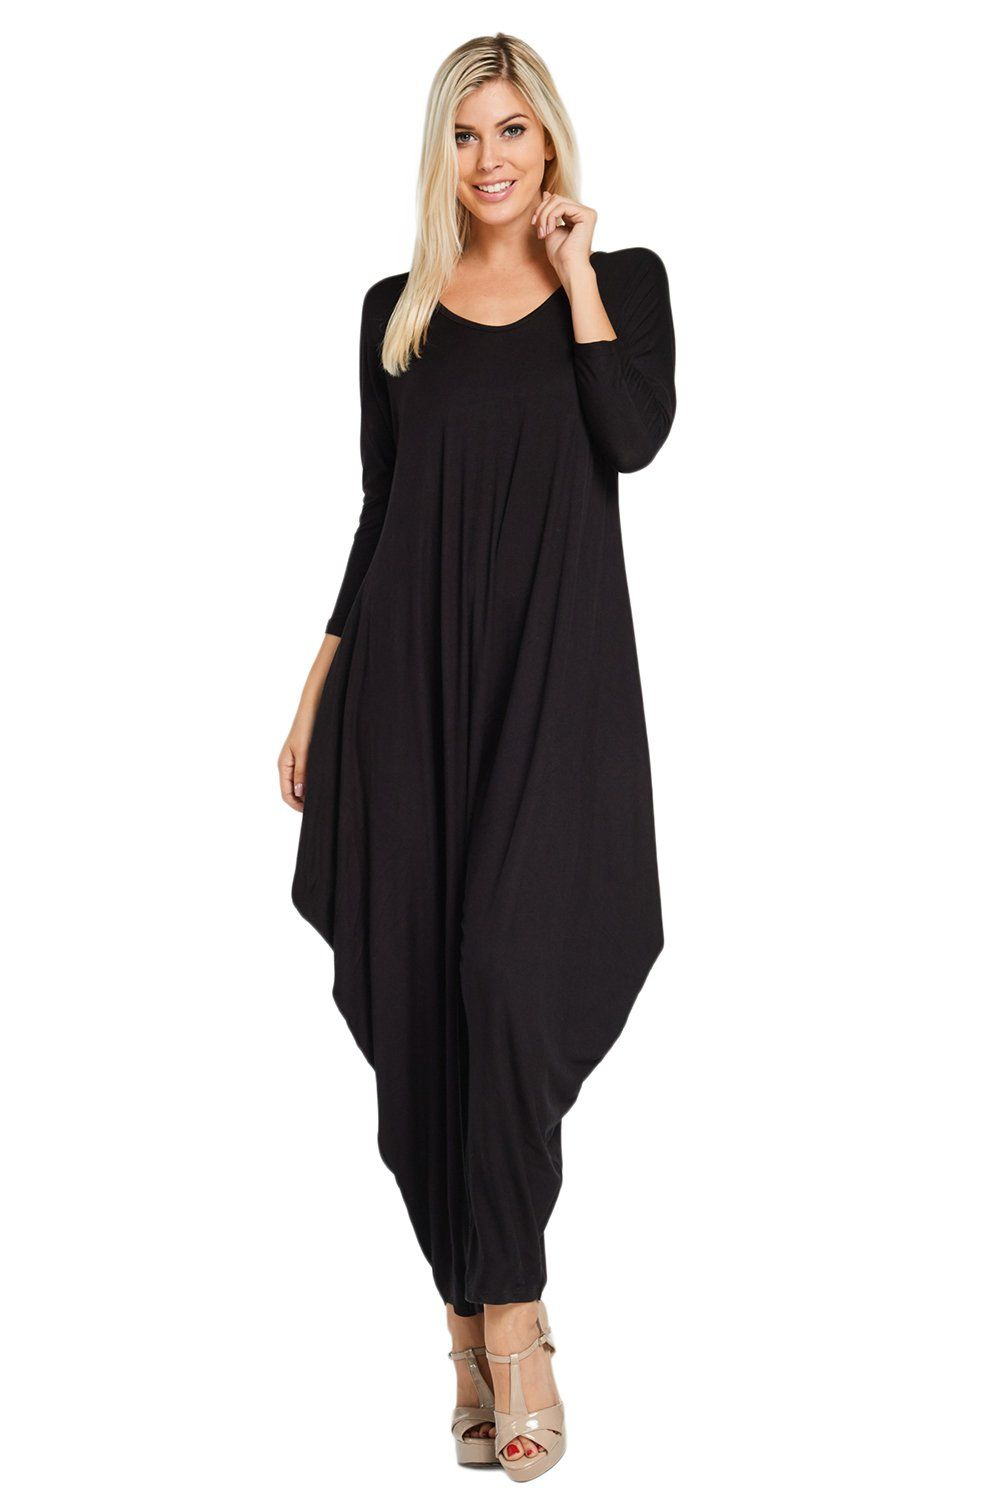 2895665e3b8 Annabelle Women s Long Sleeve Comfy Harem Jumpsuit Romper with Pockets  Black Large J8002